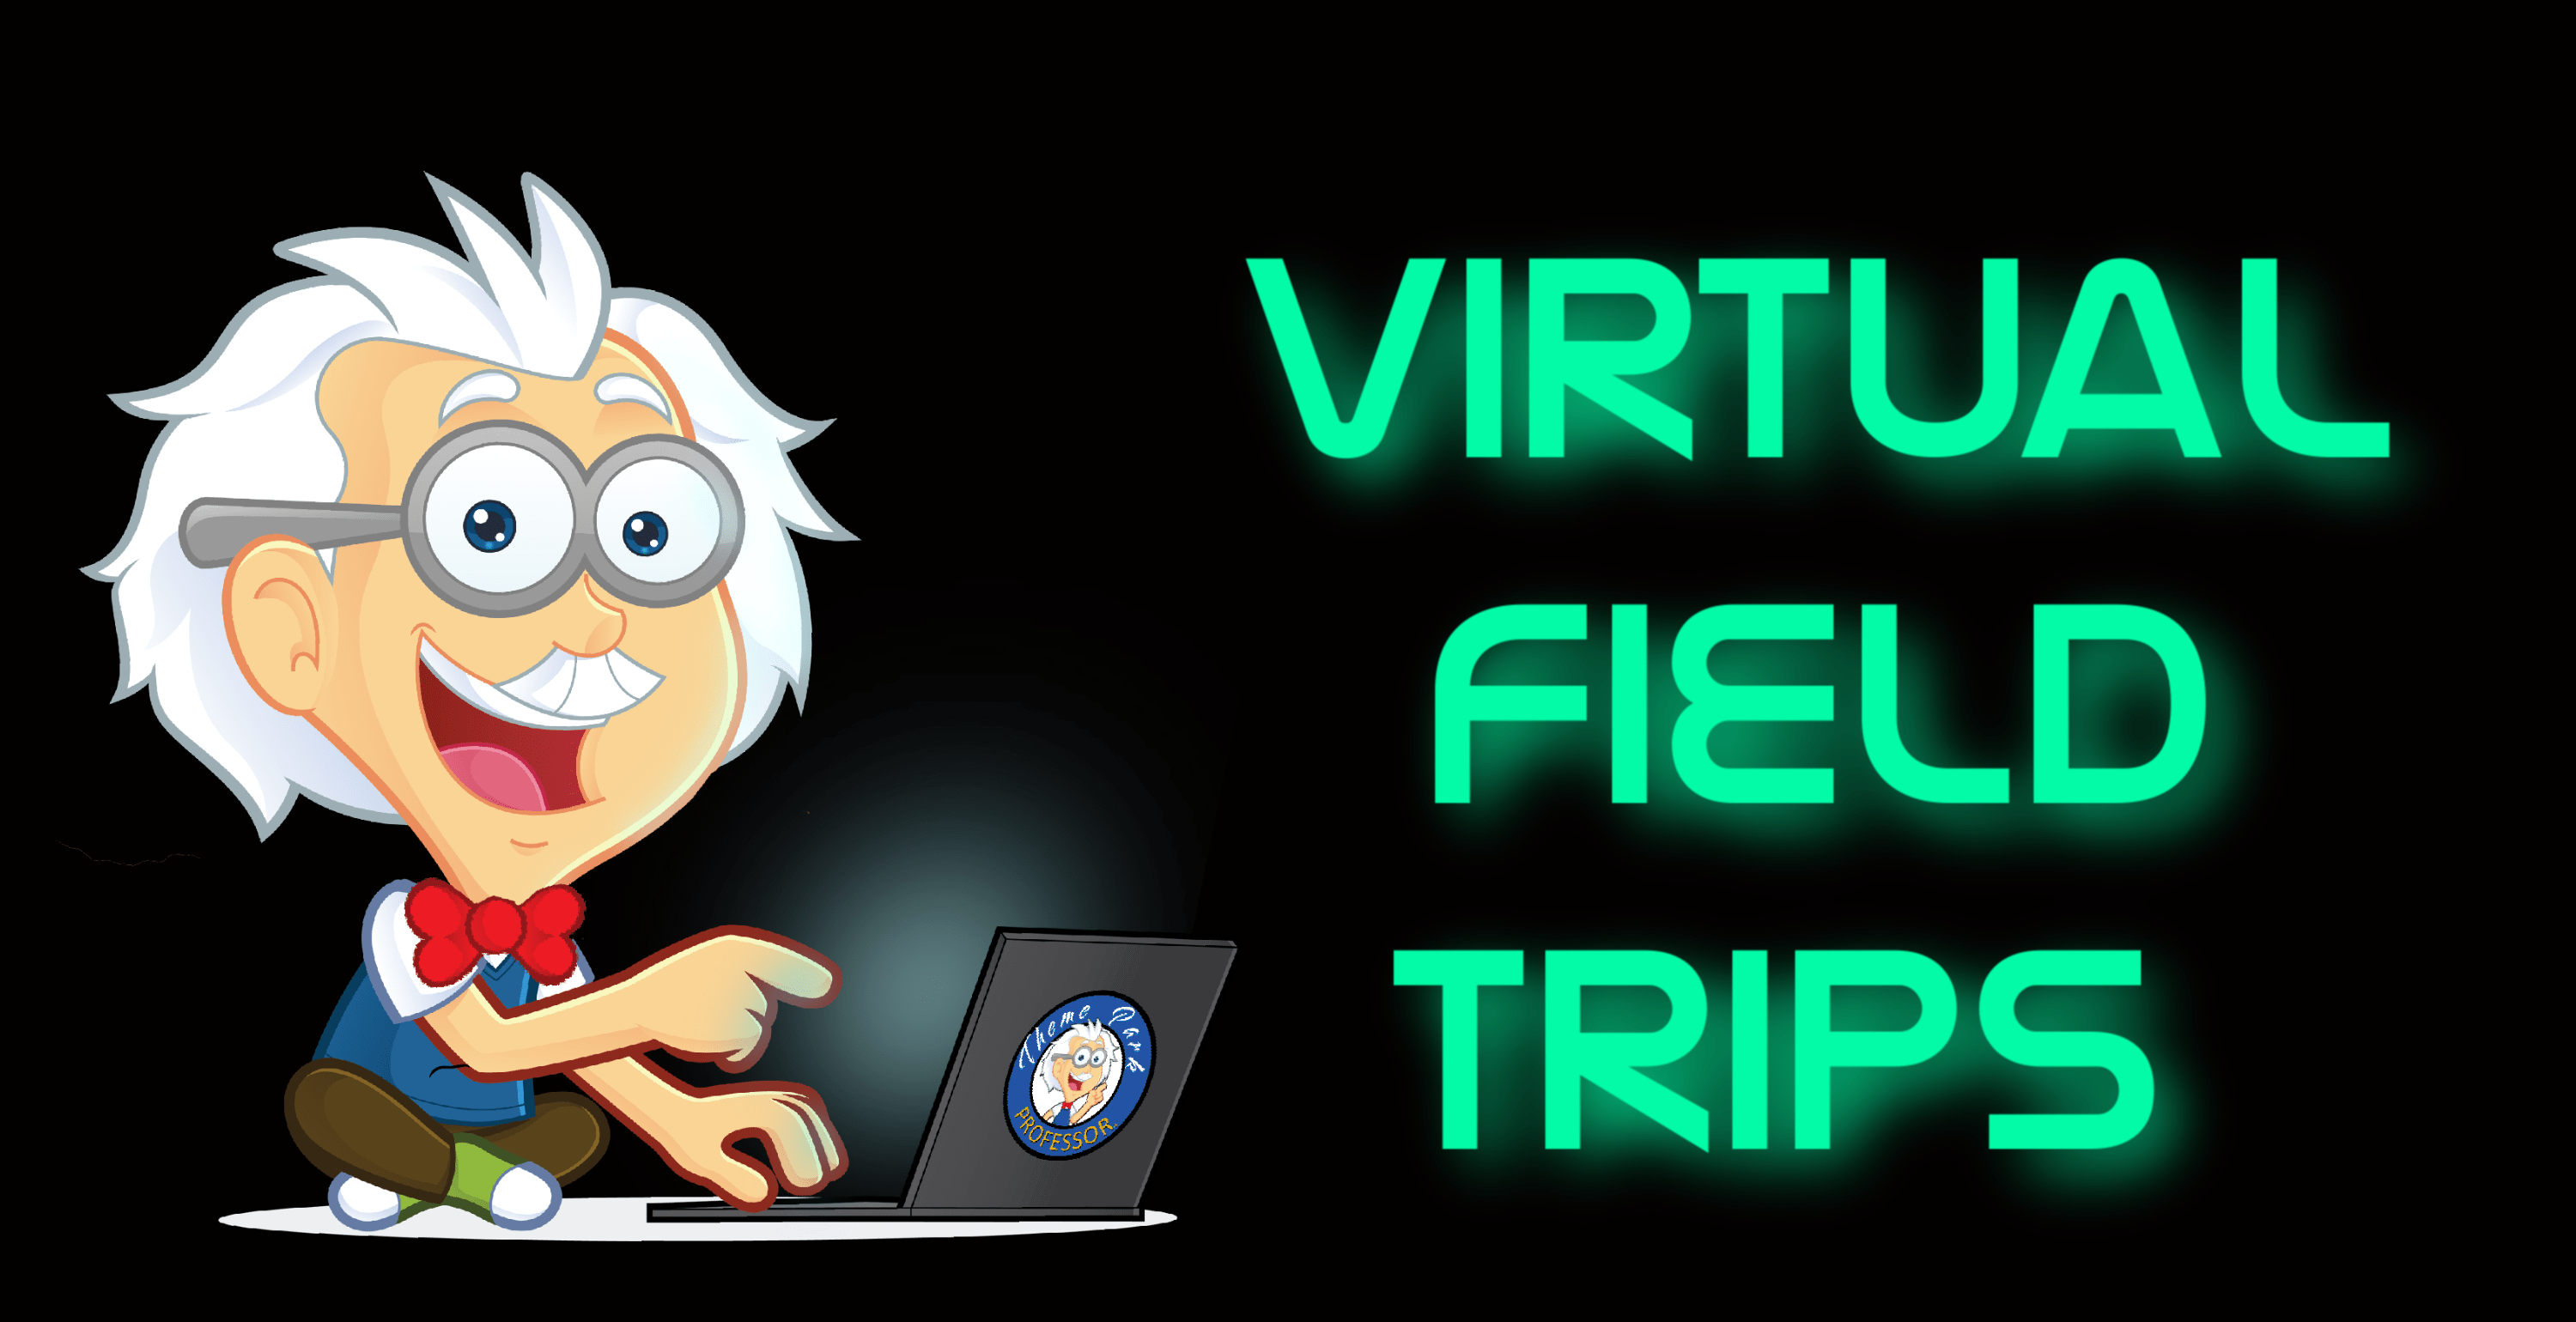 Virtual Field Trips To Take When Homebound In